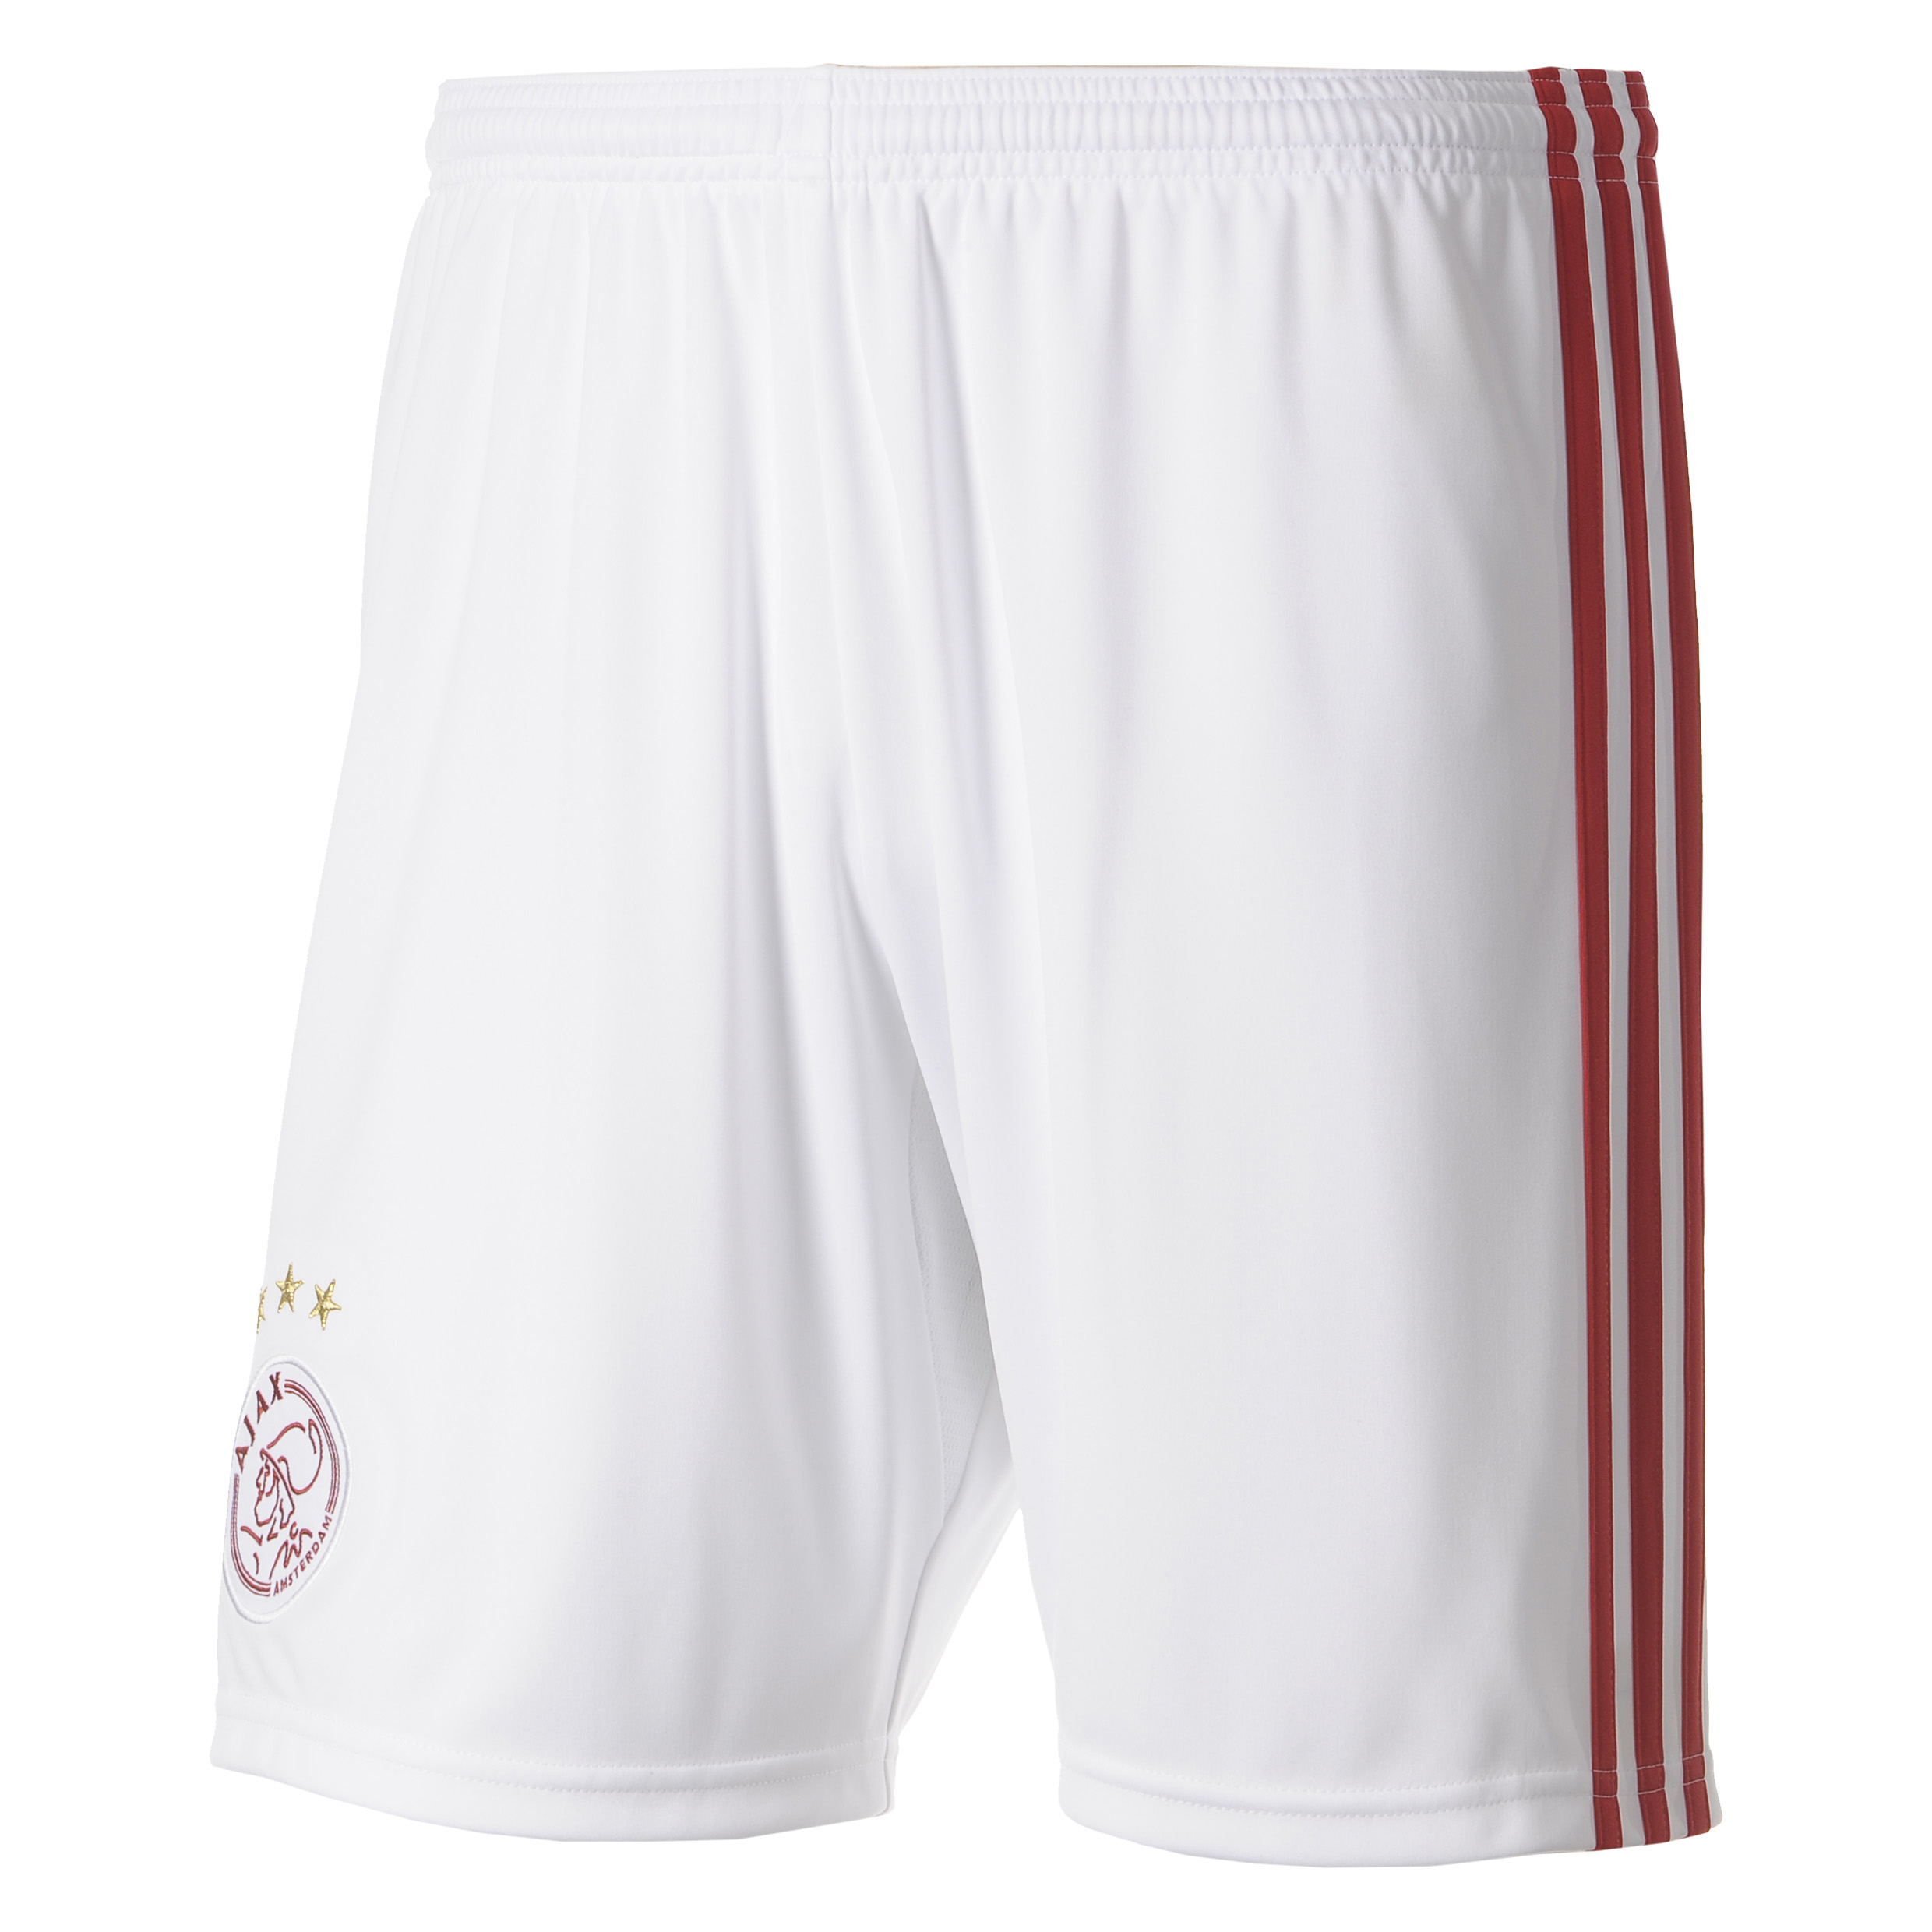 Ajax Home Short 2014/15